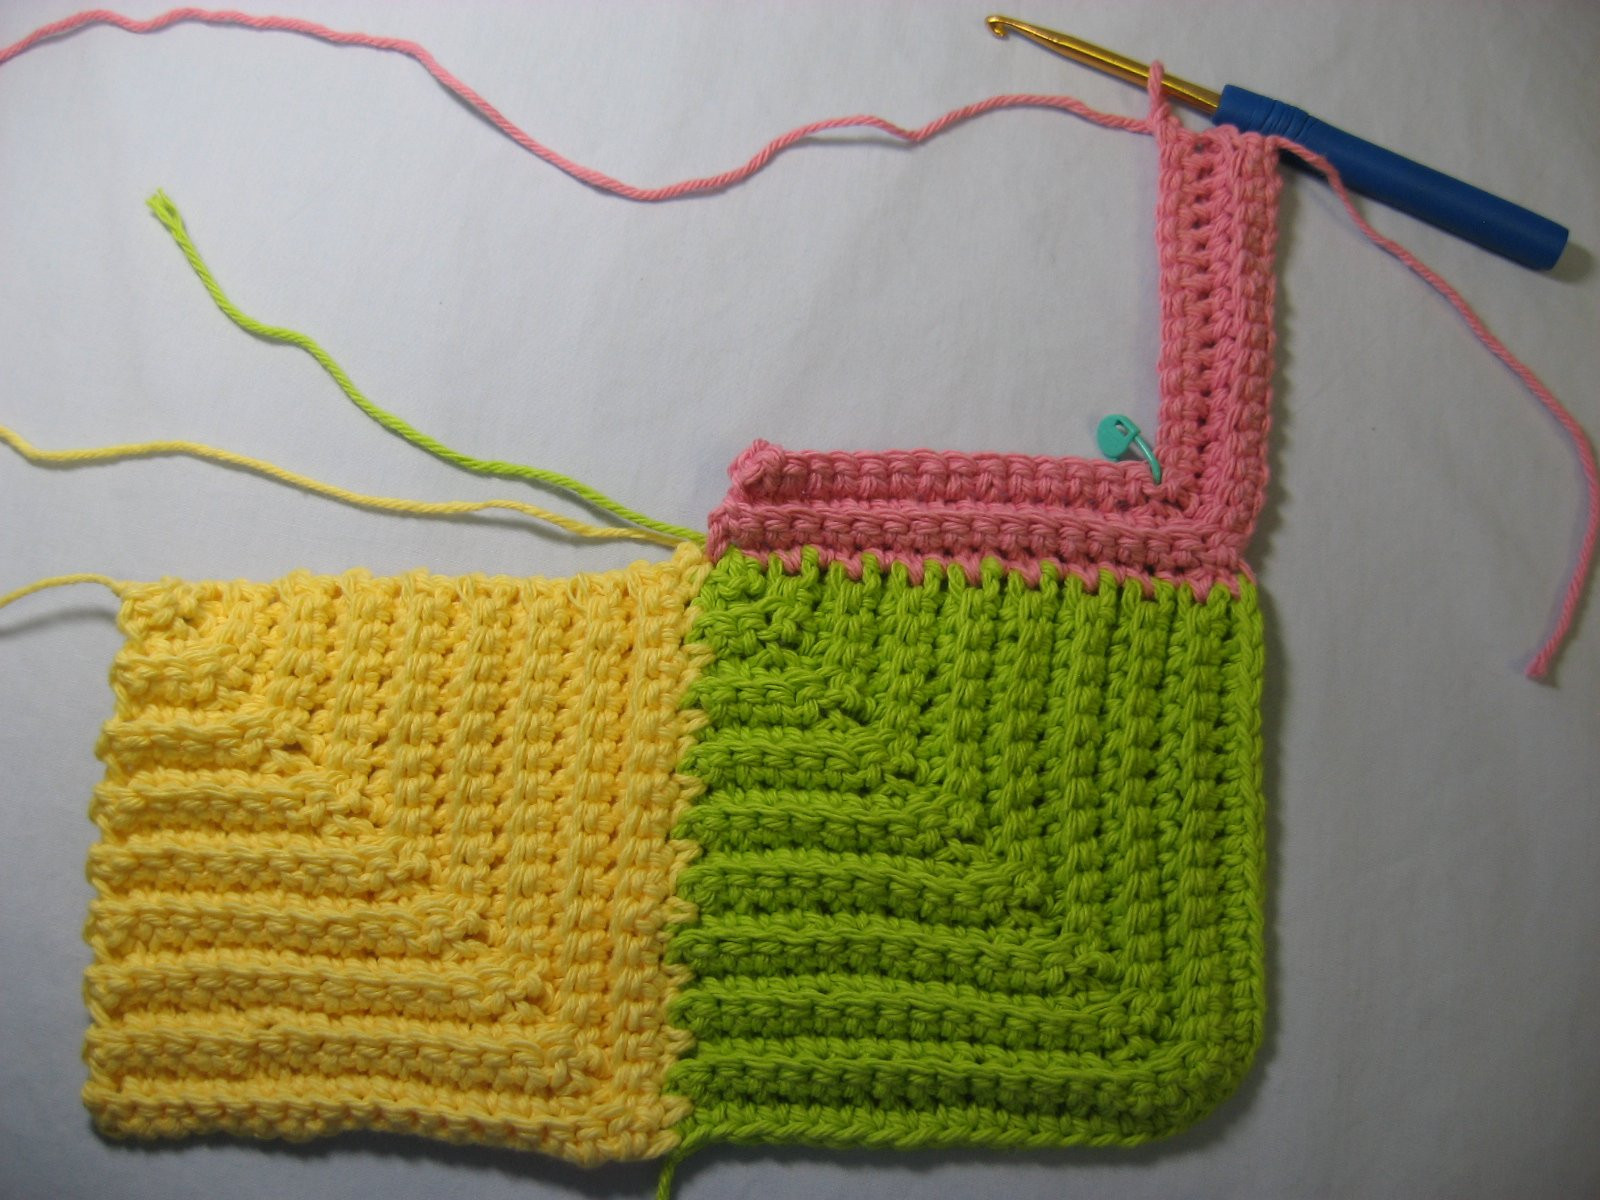 Best Of Hooked On Needles Mitered Square Crocheted Baby Blanket Crochet Blanket Squares Of Incredible 46 Models Crochet Blanket Squares